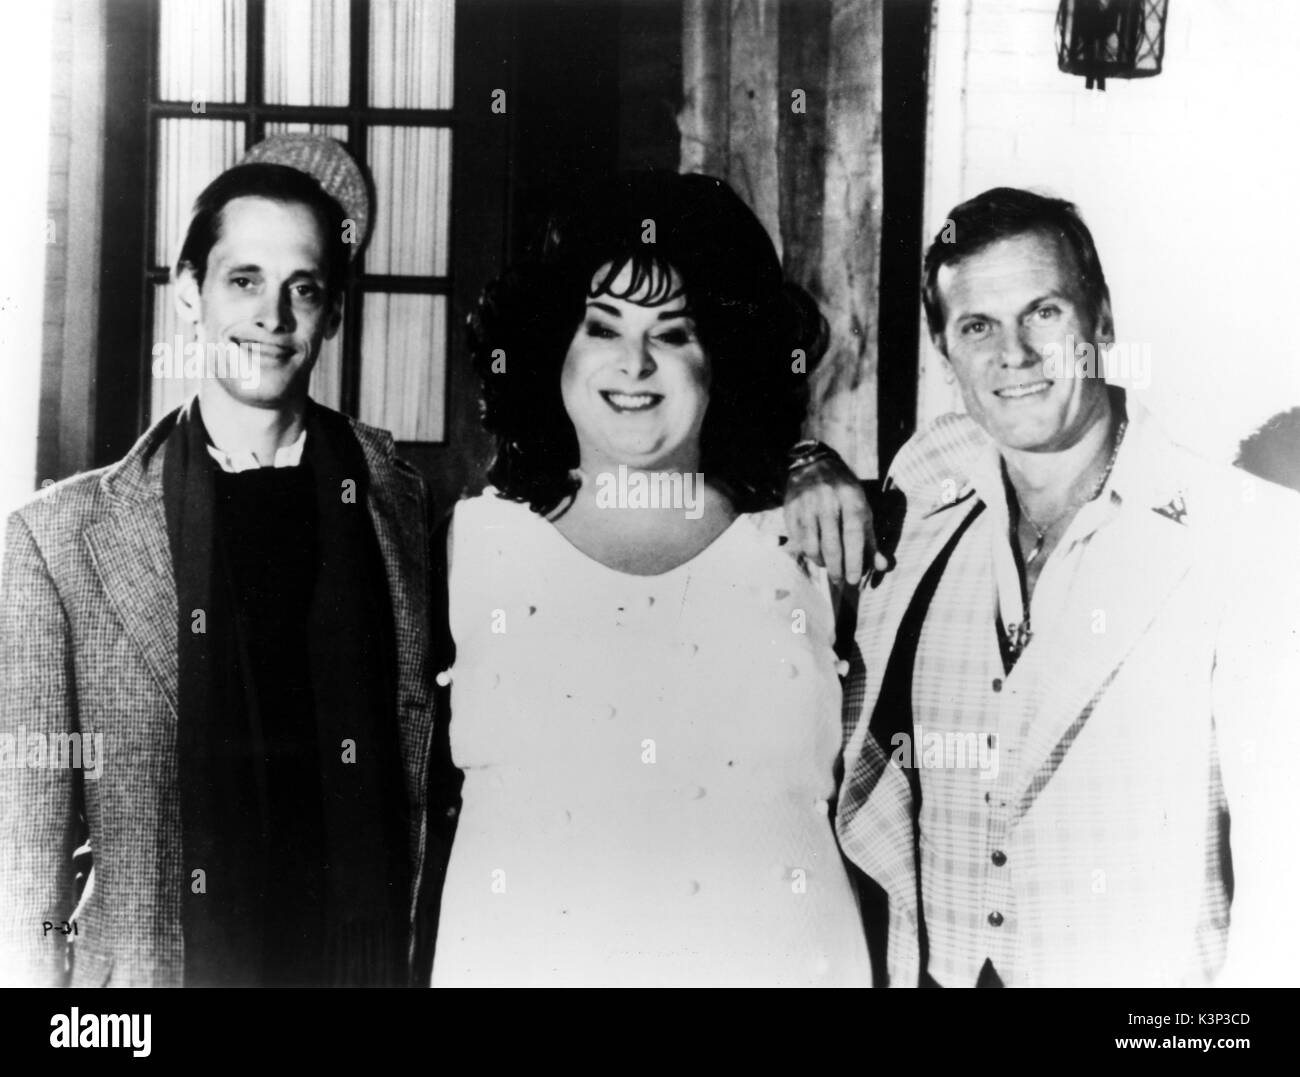 POLYESTER [US 1981] Director JOHN WATERS, DIVINE, TAB HUNTER Date: 1981